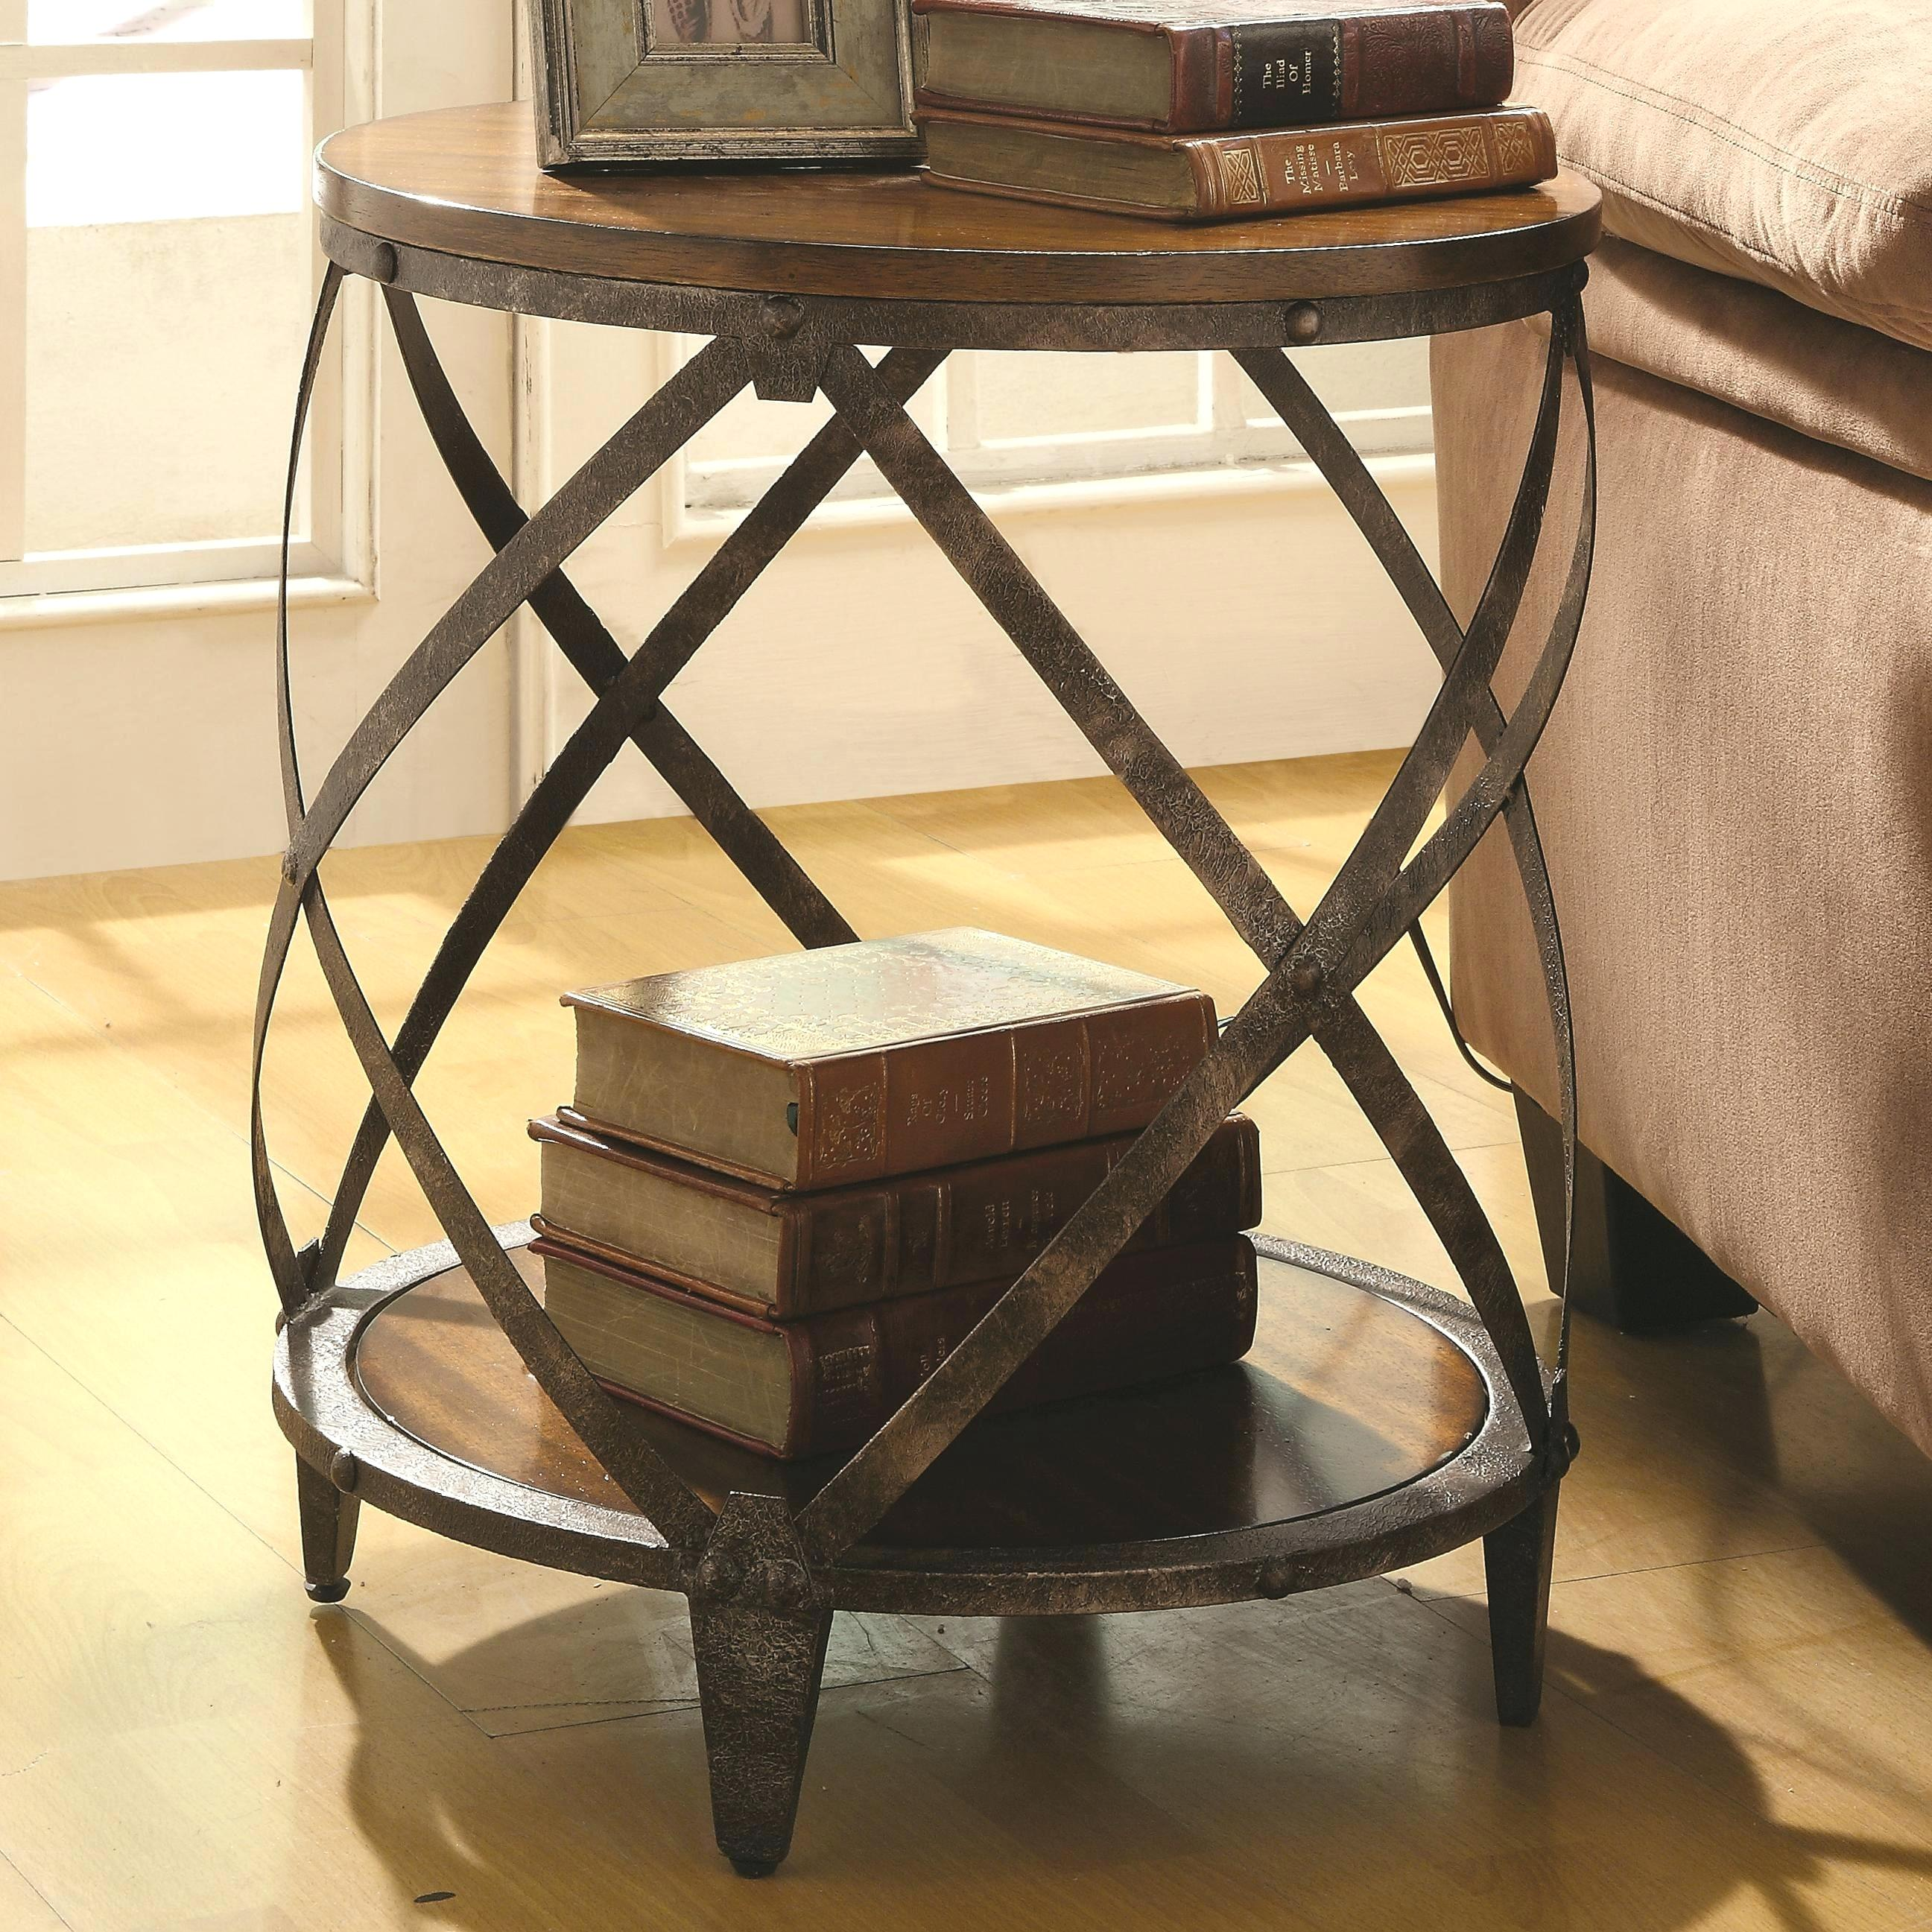 metal accent table hepsy coaster cabinets contemporary with drum shape fine furniture target threshold mid century side jcpenney dishes modern mississauga offset umbrella tray